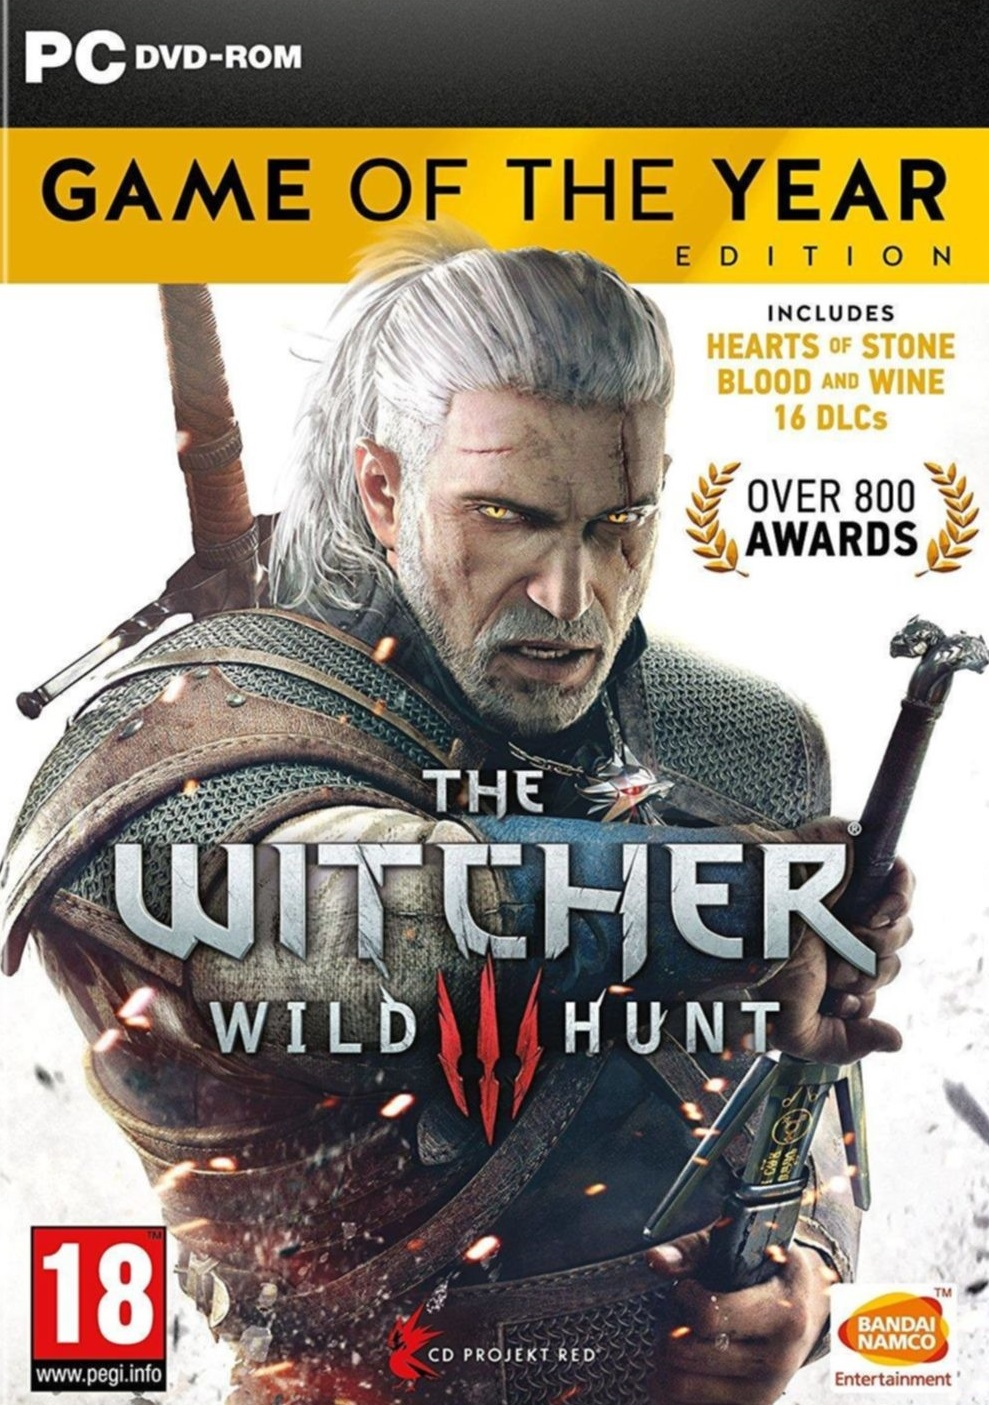 Descargar The Witcher 3 Wild Hunt GOTY PC Cover Caratula